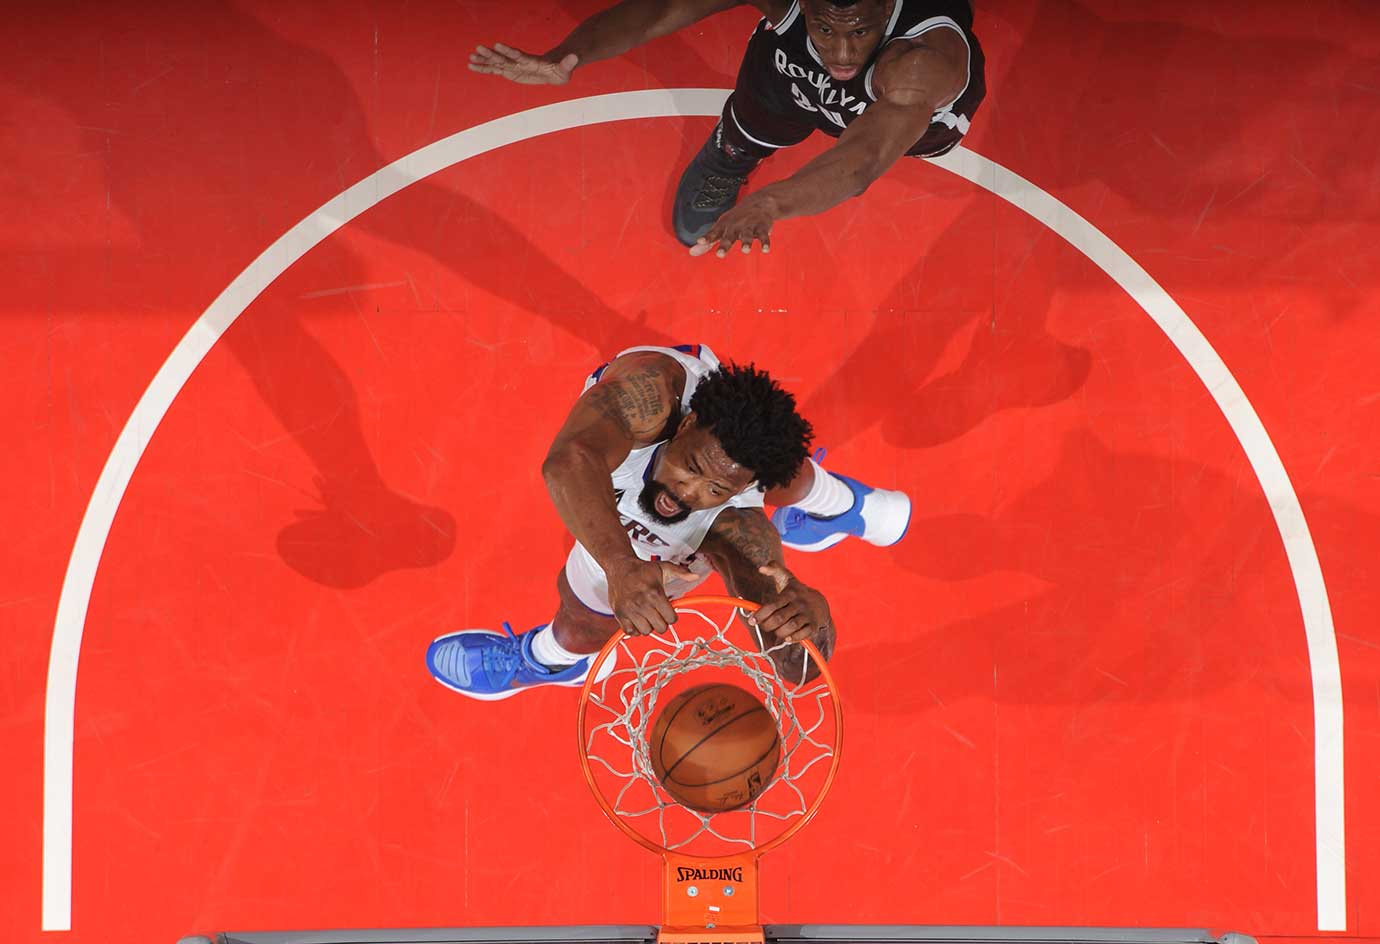 DeAndre Jordan of the Los Angeles Clippers dunks against the Brooklyn Nets.